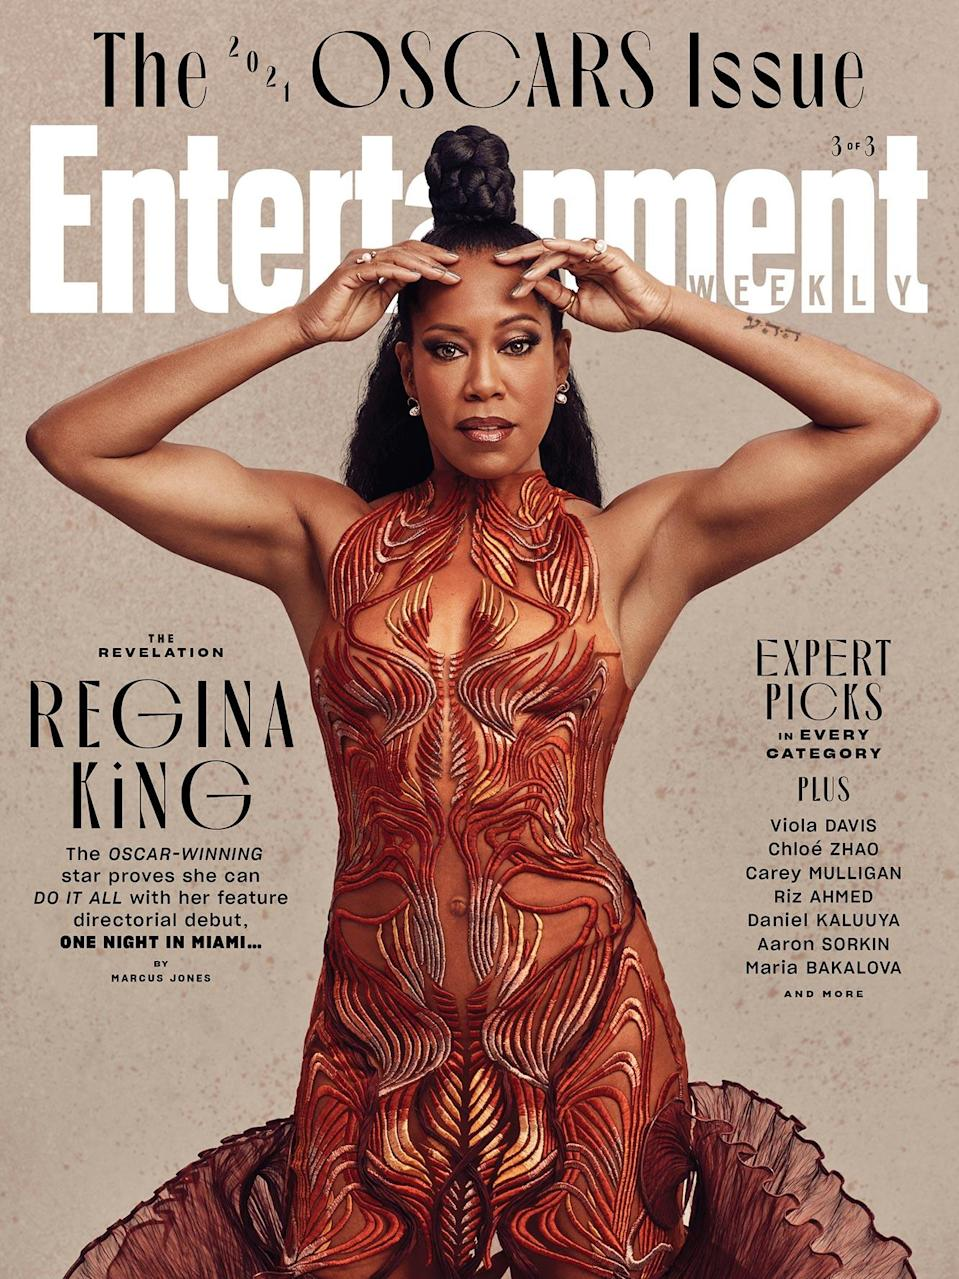 "<p><em><strong>For more on the 2021 Oscars race, order the May issue of </strong></em><strong>Entertainment Weekly <em>— with covers featuring <a href=""https://www.magazine.store/entertainment-weekly/2021/2021-oscars-chole-zhao/"" rel=""nofollow noopener"" target=""_blank"" data-ylk=""slk:Chloé Zhao"" class=""link rapid-noclick-resp"">Chloé Zhao</a>, <a href=""https://www.magazine.store/entertainment-weekly/2021/2021-oscars-viola-davis/"" rel=""nofollow noopener"" target=""_blank"" data-ylk=""slk:Viola Davis"" class=""link rapid-noclick-resp"">Viola Davis</a>, and <a href=""https://www.magazine.store/entertainment-weekly/2021/2021-oscars-regina-king/"" rel=""nofollow noopener"" target=""_blank"" data-ylk=""slk:Regina King"" class=""link rapid-noclick-resp"">Regina King</a> — or</em></strong><em><strong> find it on newsstands beginning April 16, and keep up with EW's <a href=""https://ew.com/tag/awardist/"" rel=""nofollow noopener"" target=""_blank"" data-ylk=""slk:Awardist"" class=""link rapid-noclick-resp"">Awardist</a> online. Don't forget to <a href=""https://www.magazine.store/entertainment-weekly/"" rel=""nofollow noopener"" target=""_blank"" data-ylk=""slk:subscribe"" class=""link rapid-noclick-resp"">subscribe</a> for more exclusive interviews and photos, only in EW. </strong></em></p>"